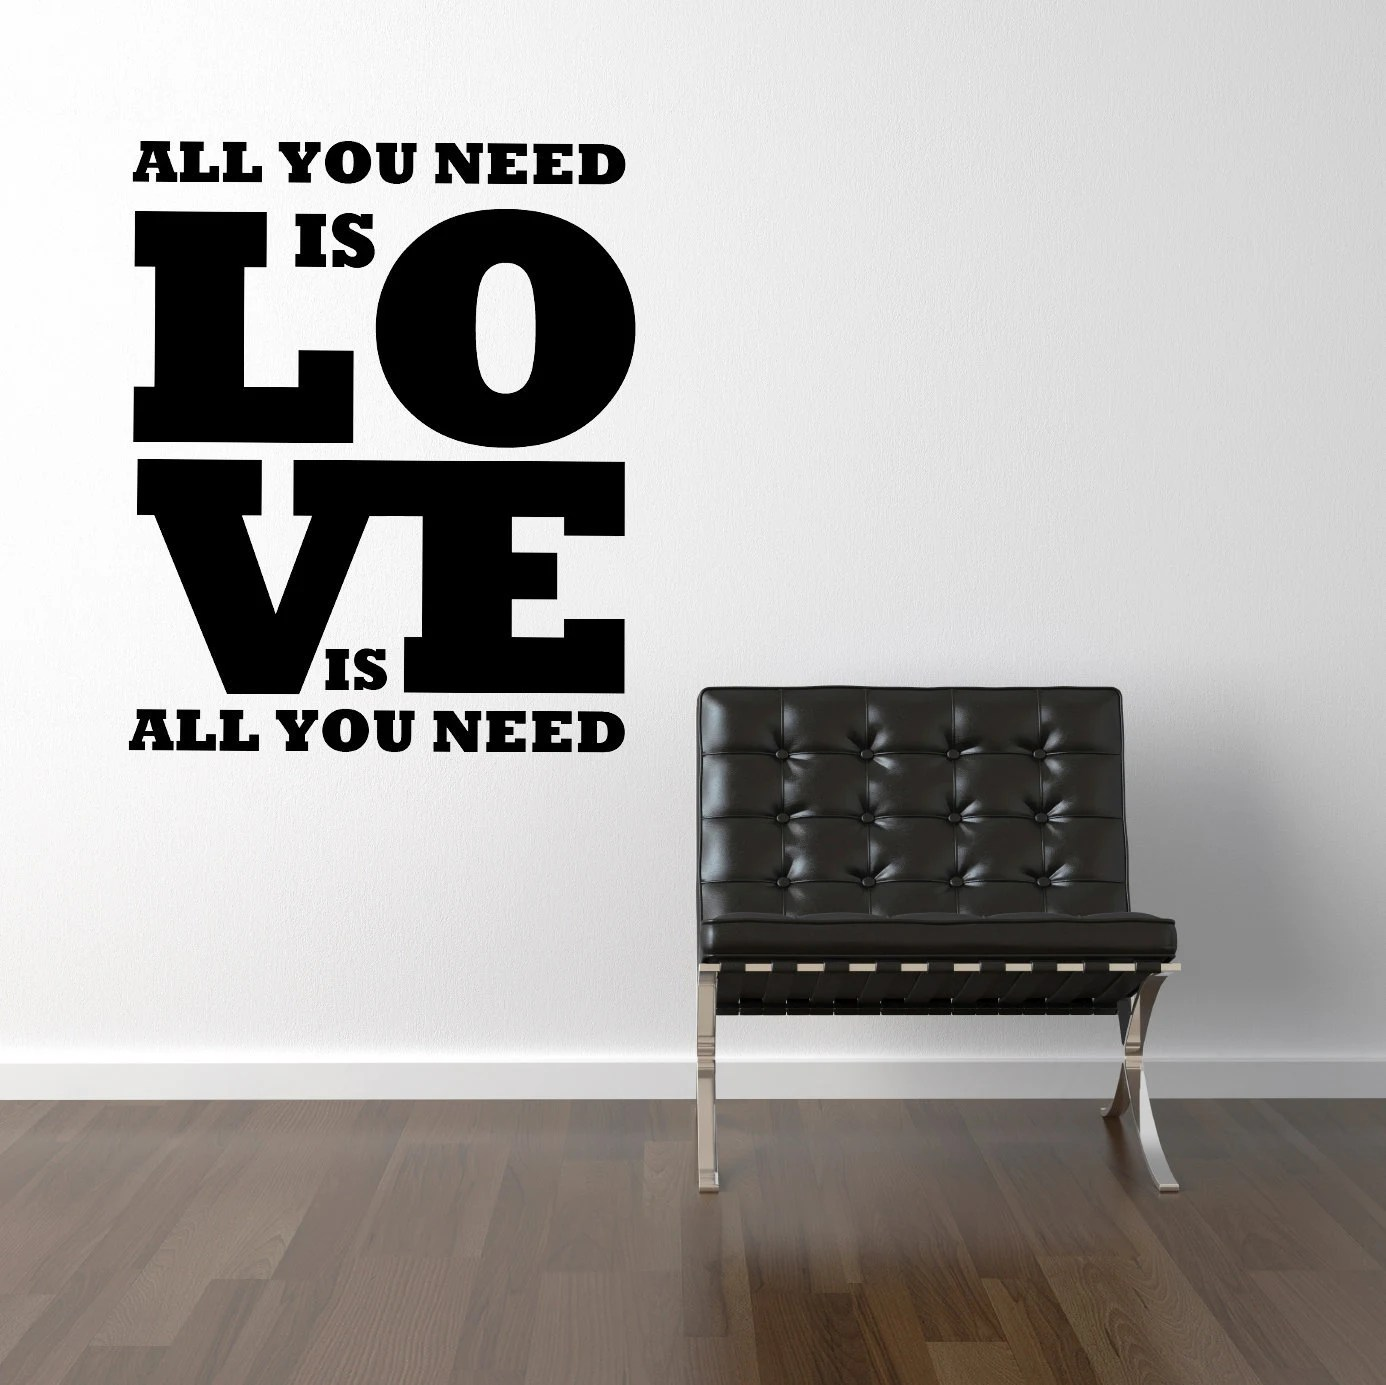 All you need is love - Vinyl Wall Decals Stickers Art Graphics Words Lettering vinyl wall decal (small)